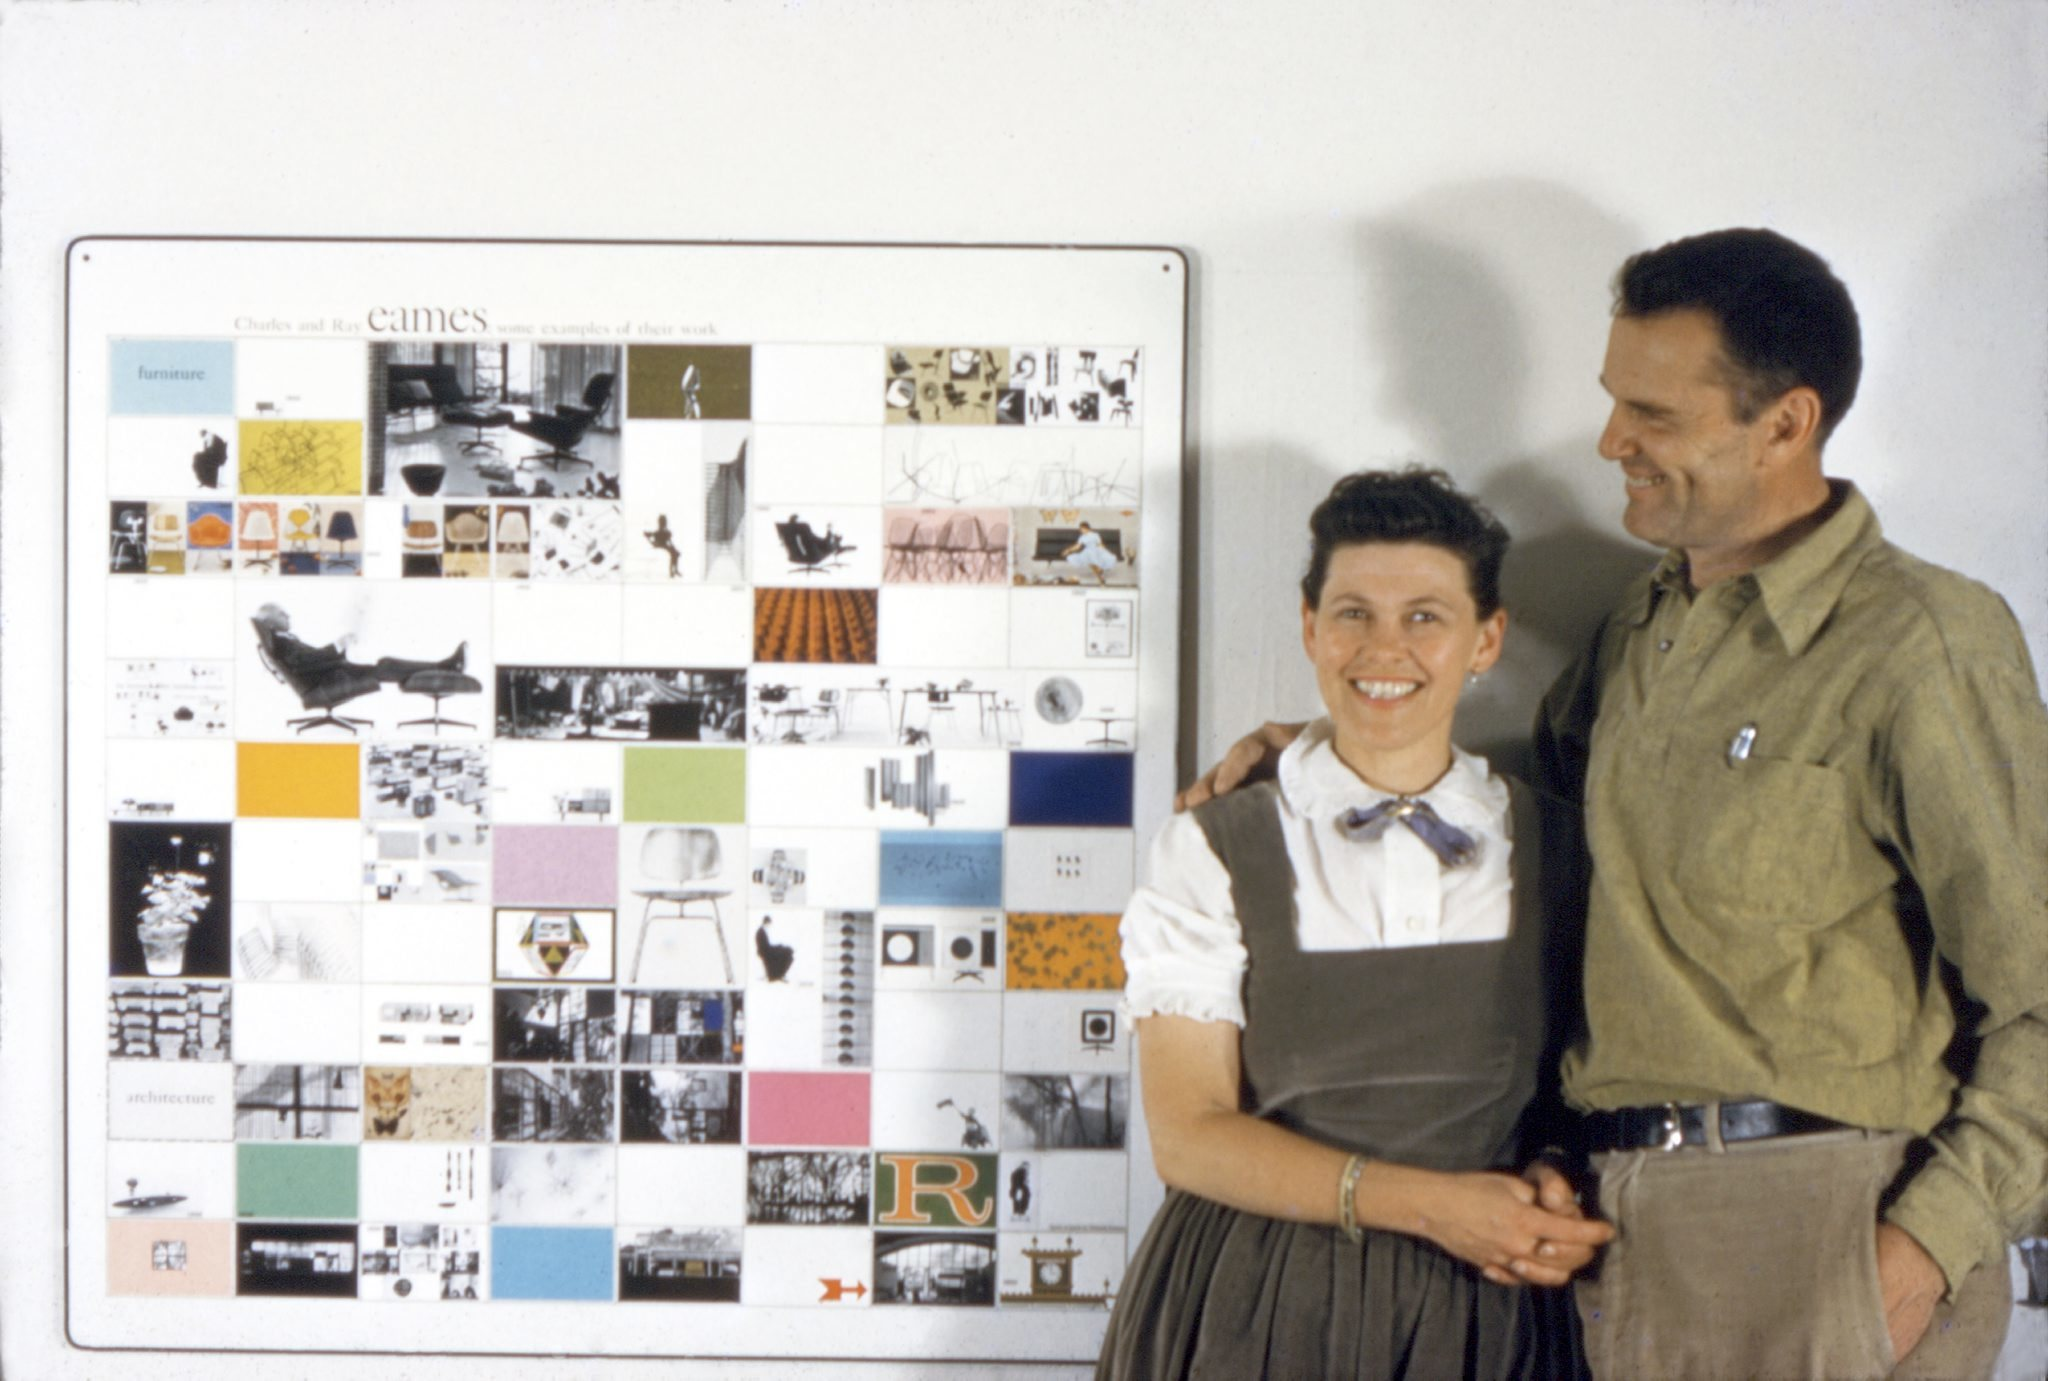 Charles Und Ray Eames The World Of Charles And Ray Eames Art In London